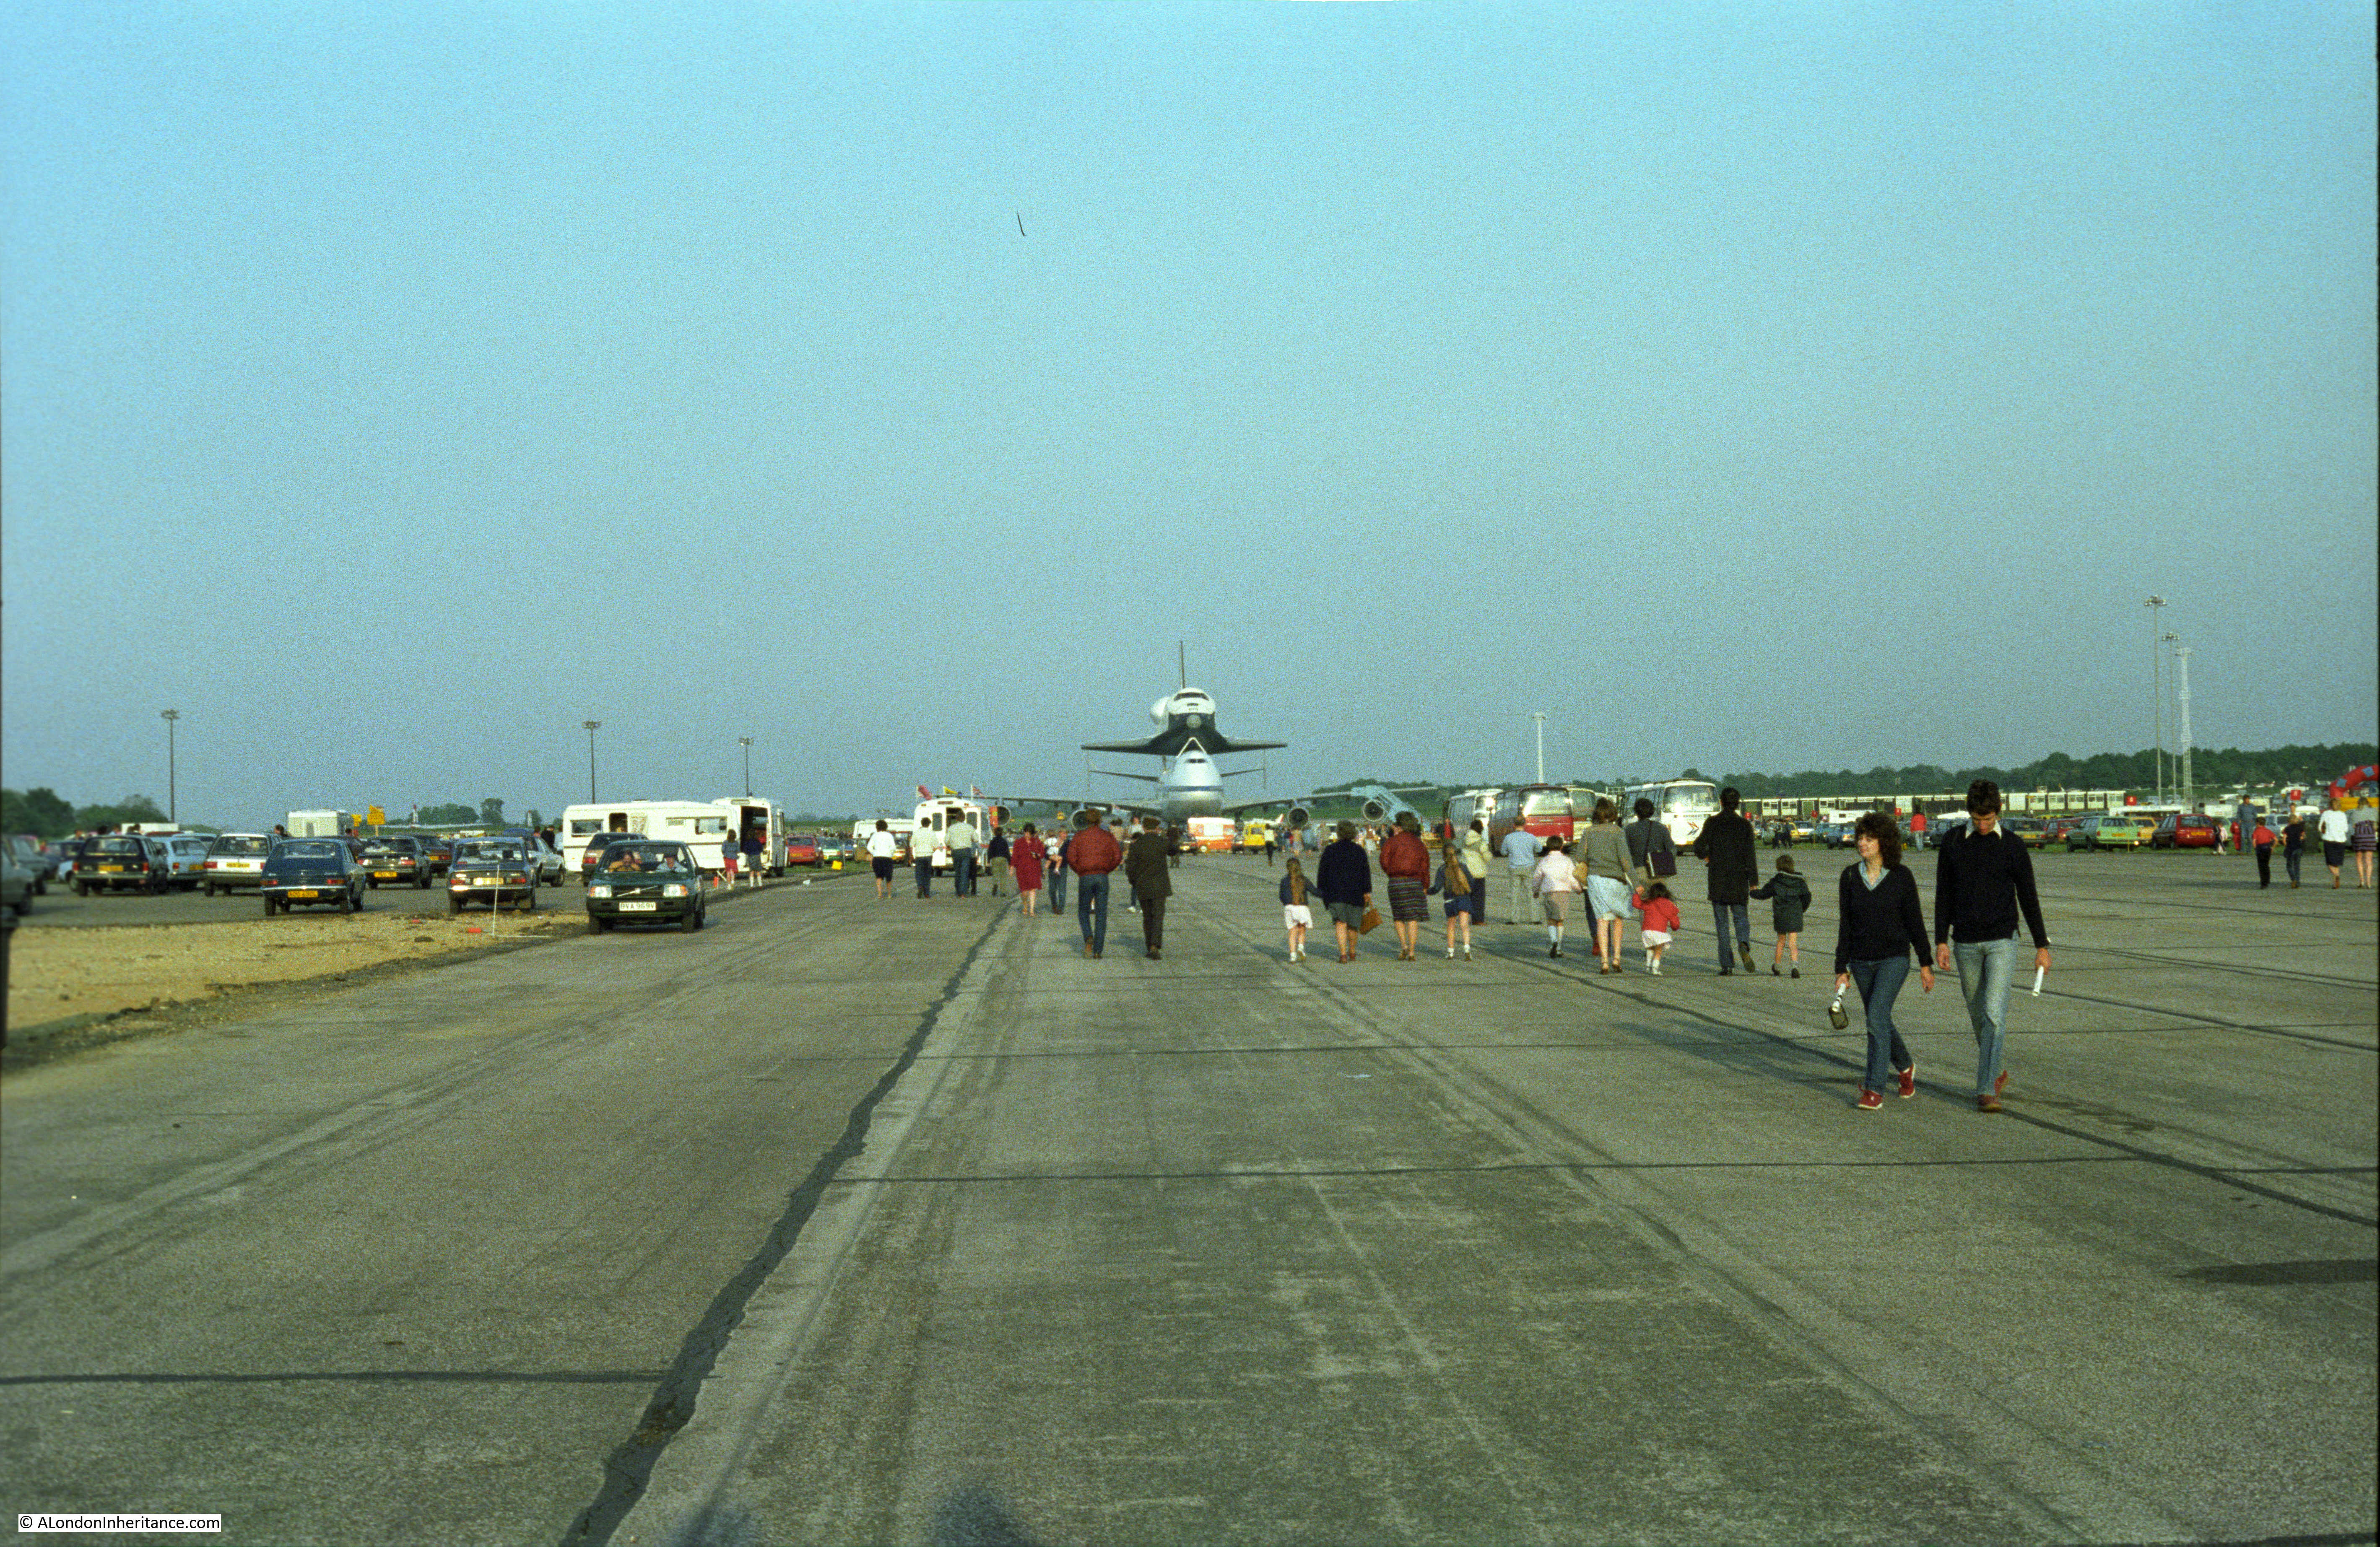 space shuttle landing at stansted - photo #22